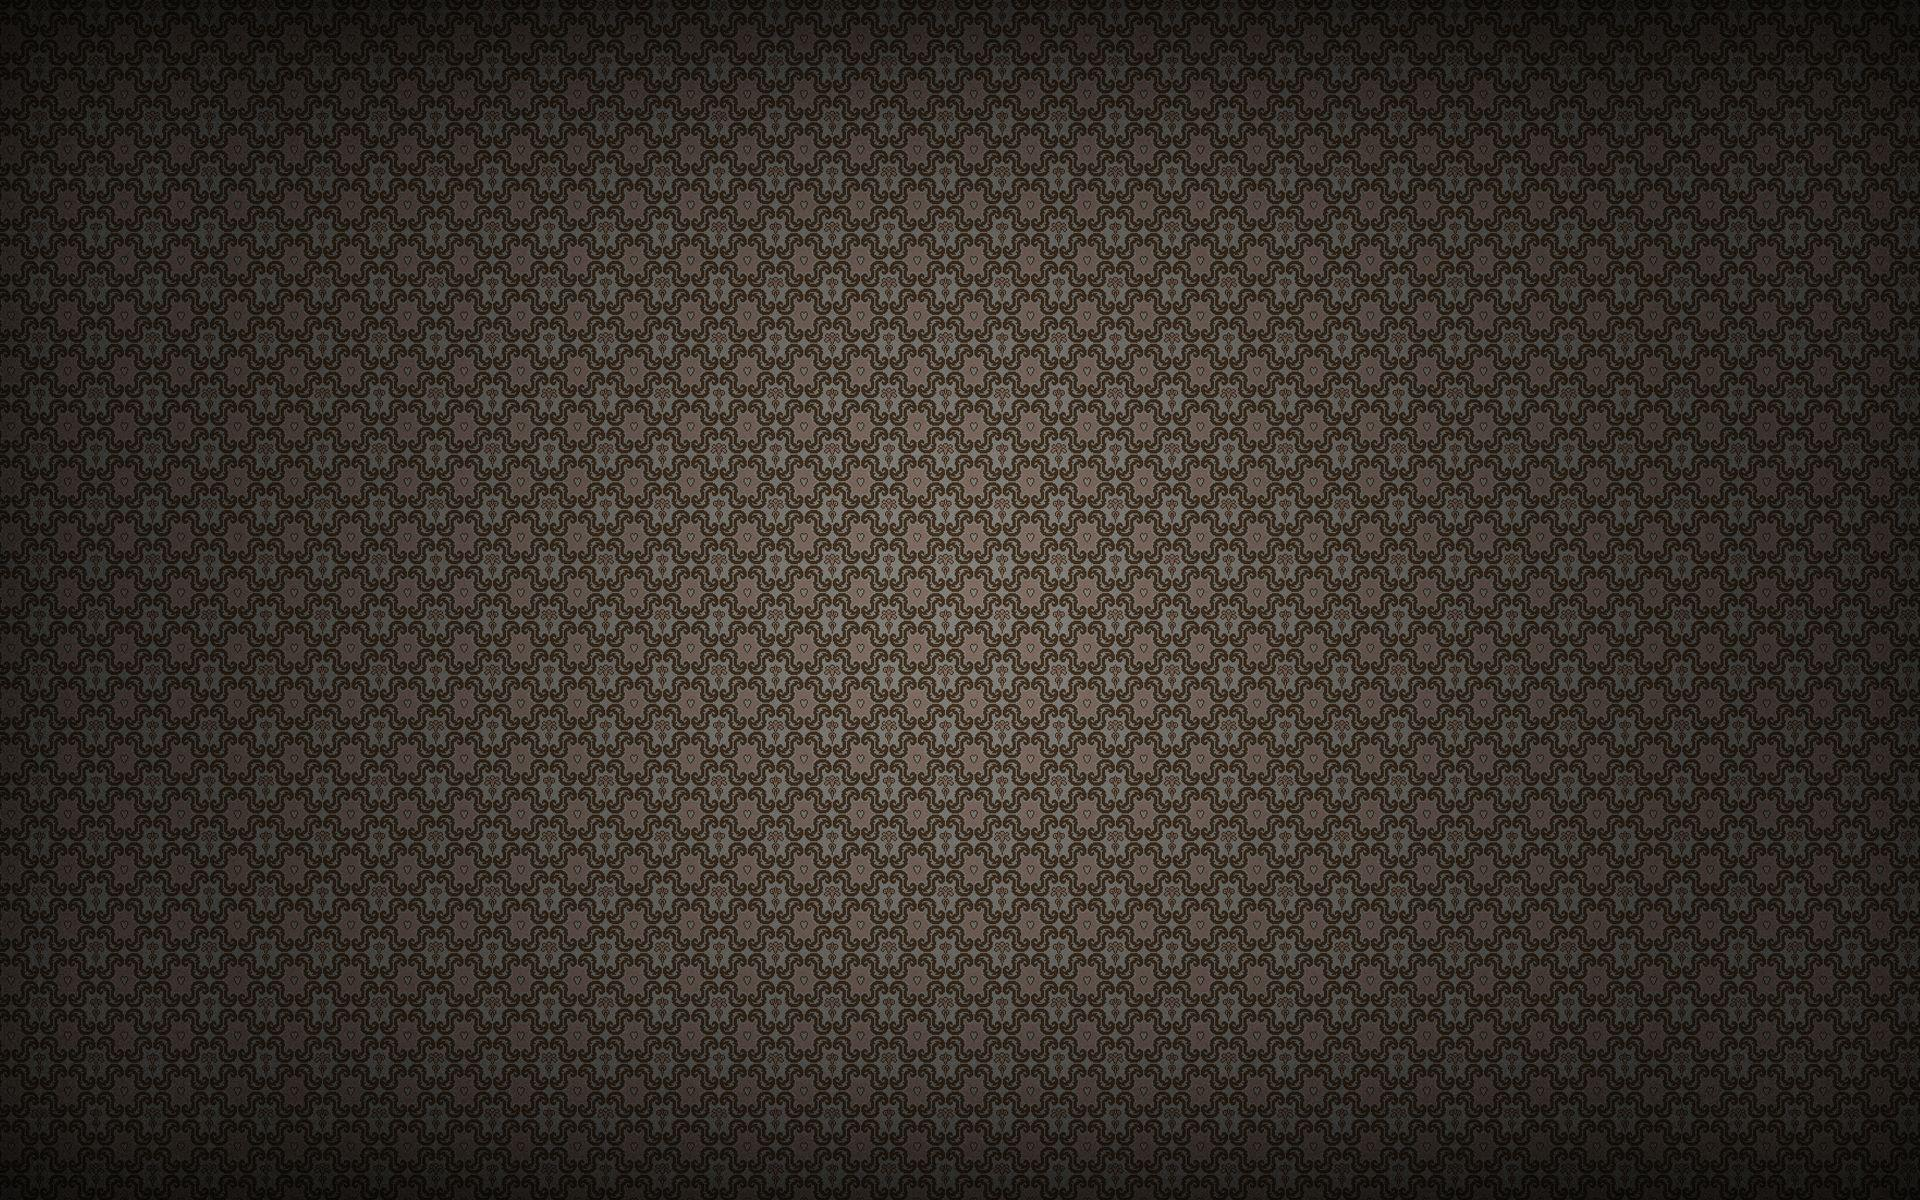 Hd Texture Wallpapers Wallpaper Cave